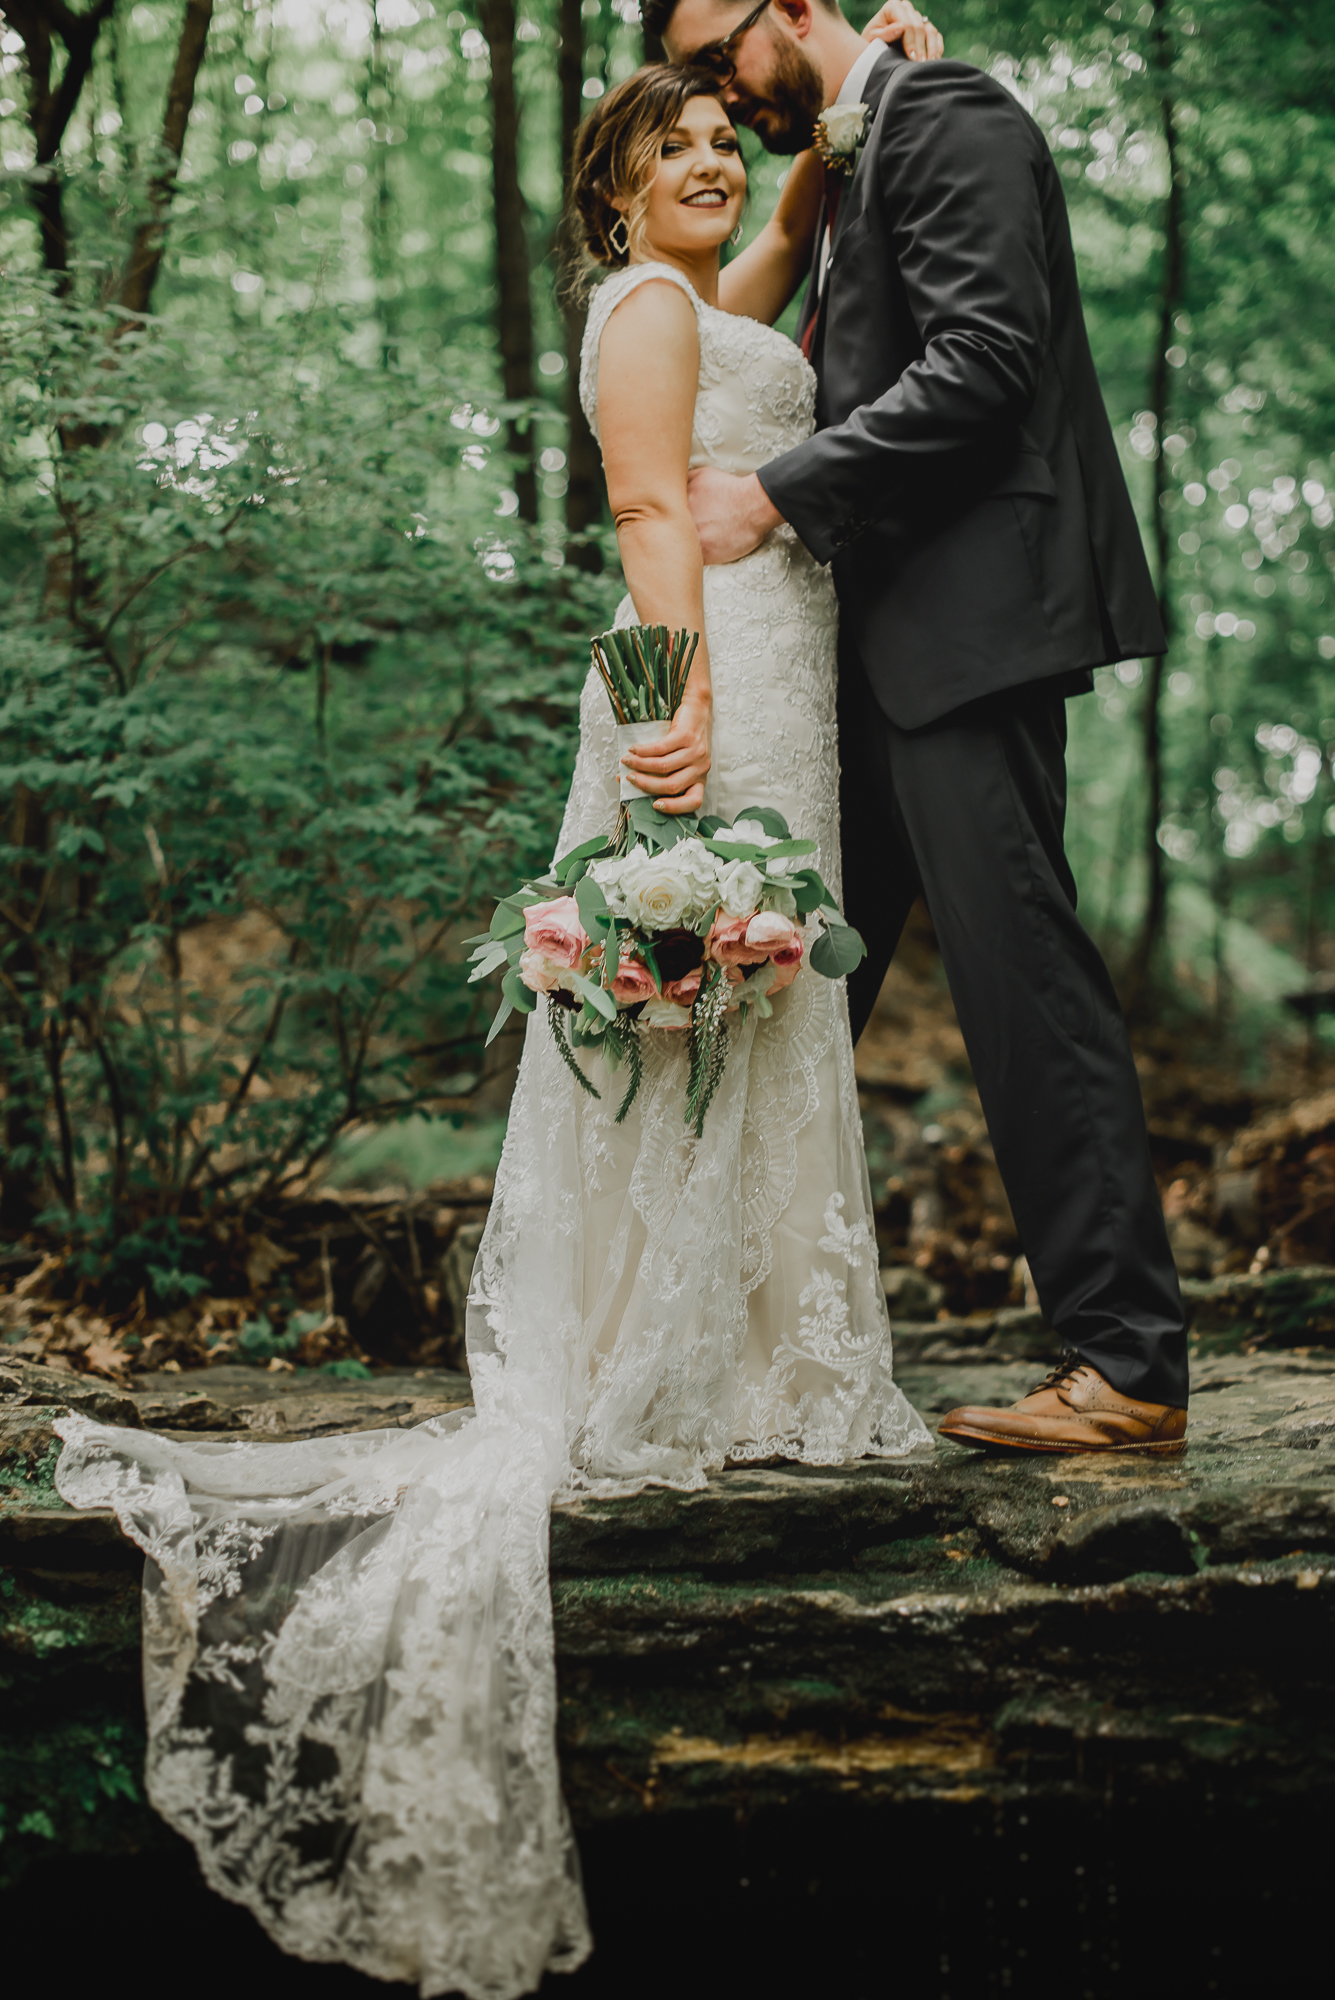 Melissa Cervantes Photography _ Kelsey + Ben Junebug Weddings Submission-76.jpg